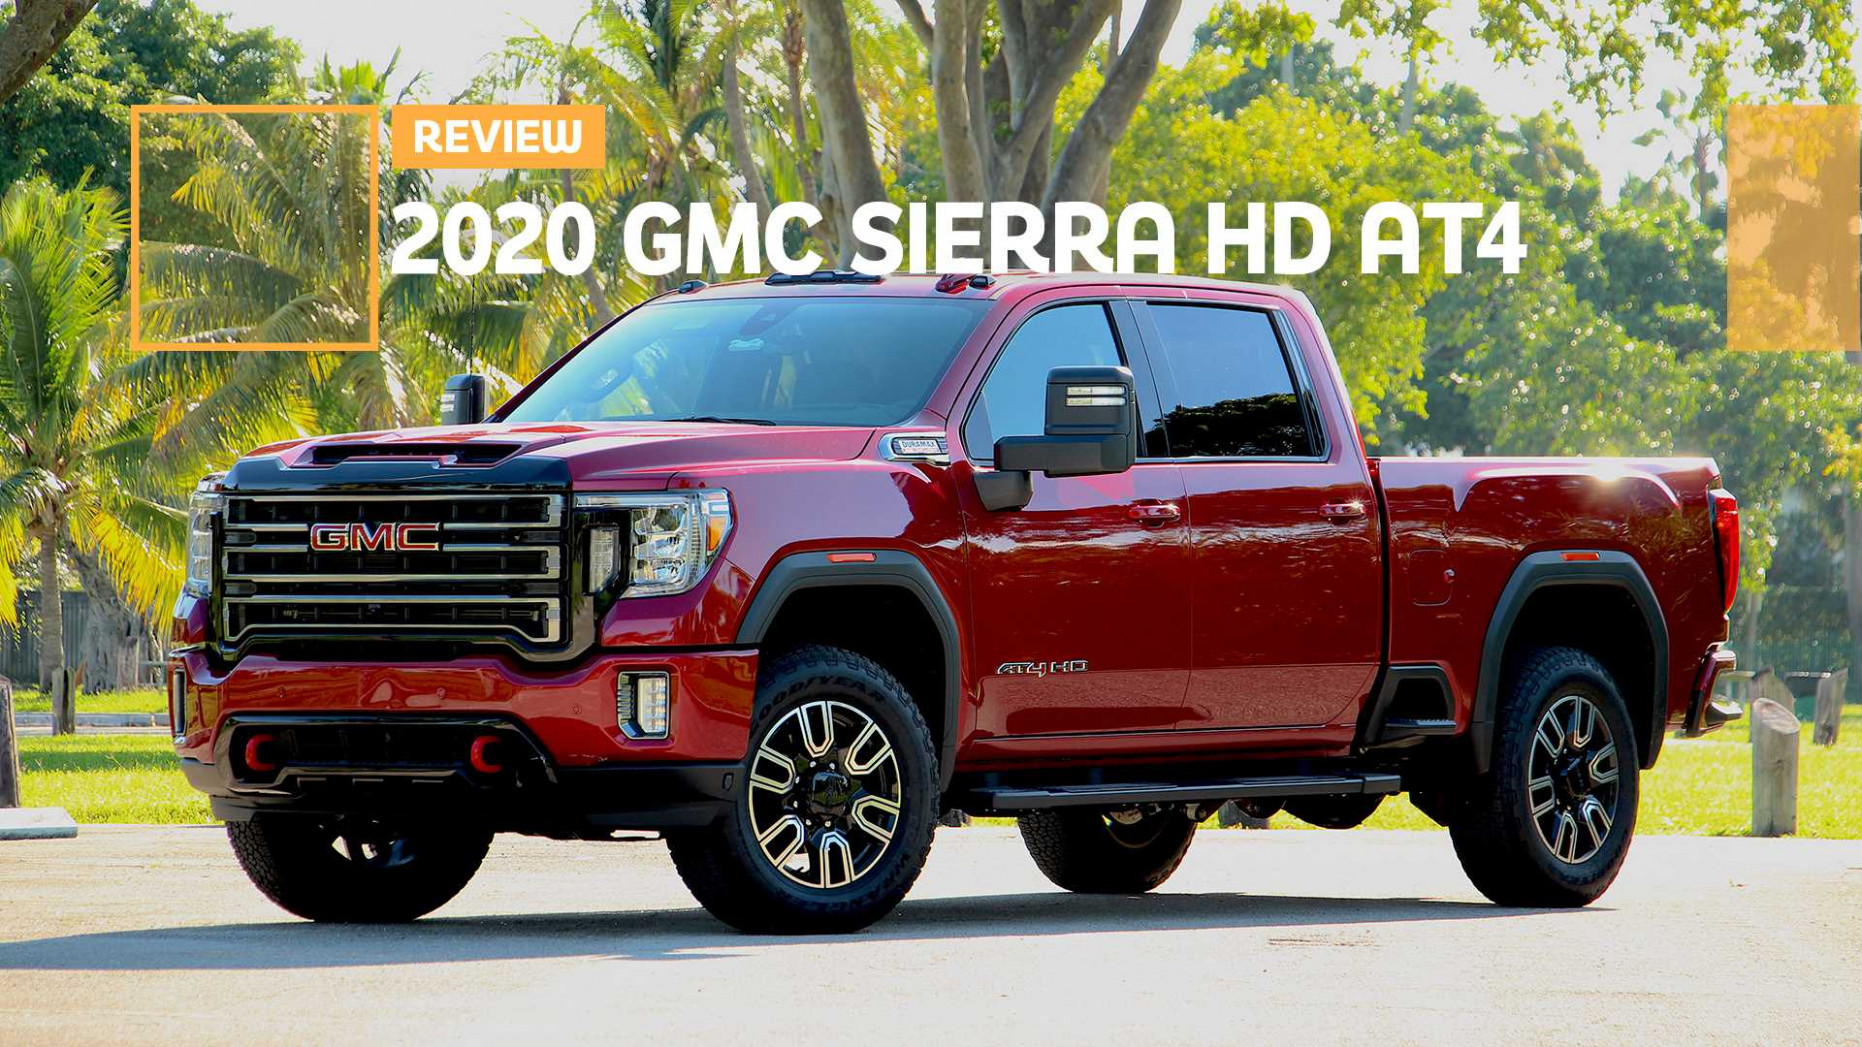 8 GMC Sierra 8 AT8 Diesel Review: Rugged But Unrefined